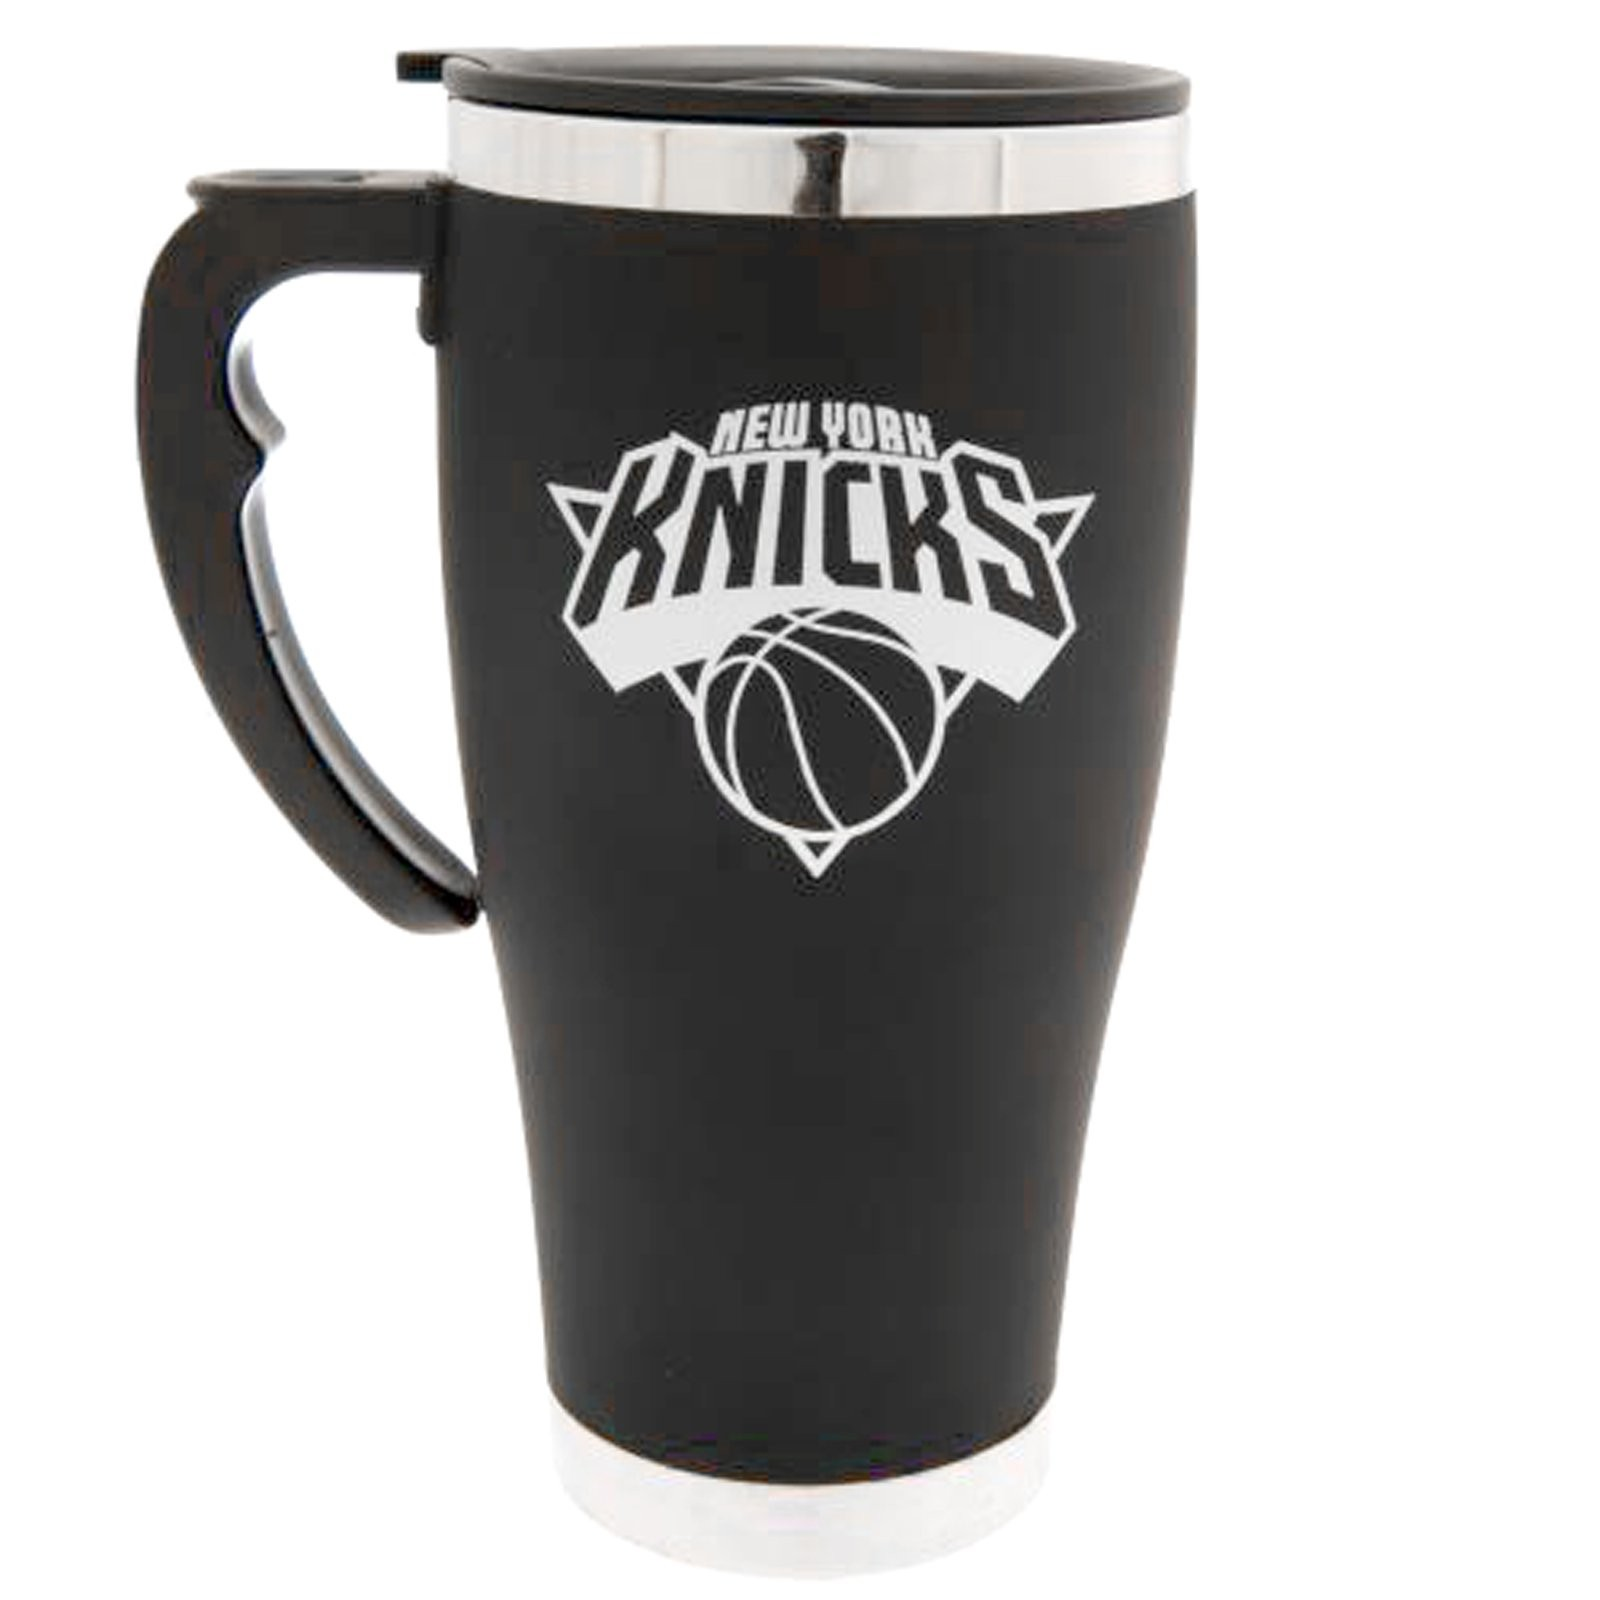 New York Knicks Foil Print Travel Mug